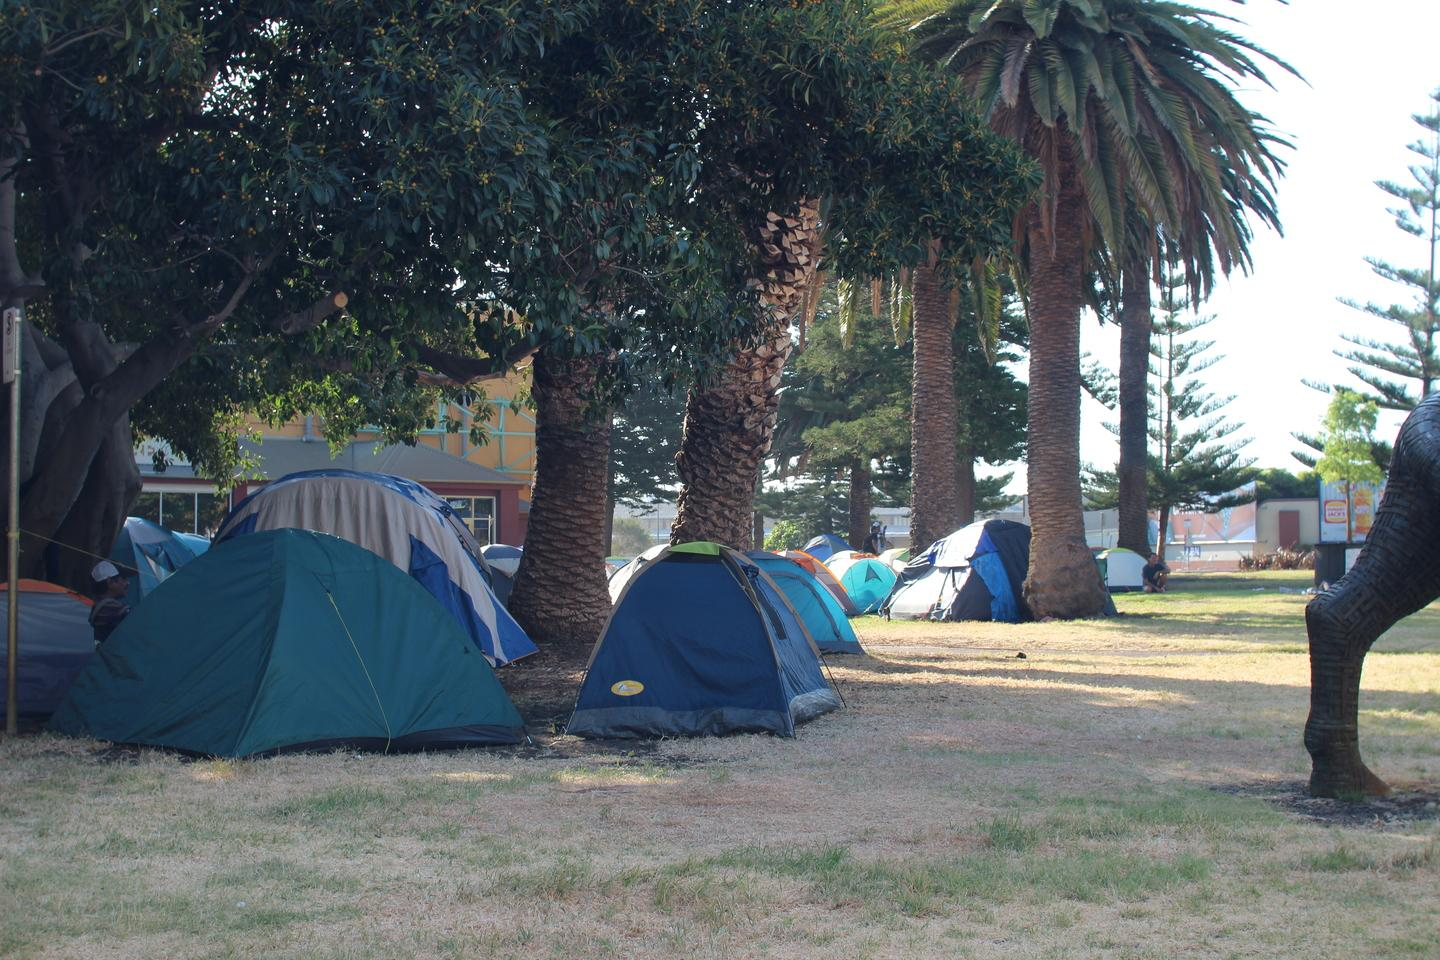 State 'hamstrung' over tent city: McGowan